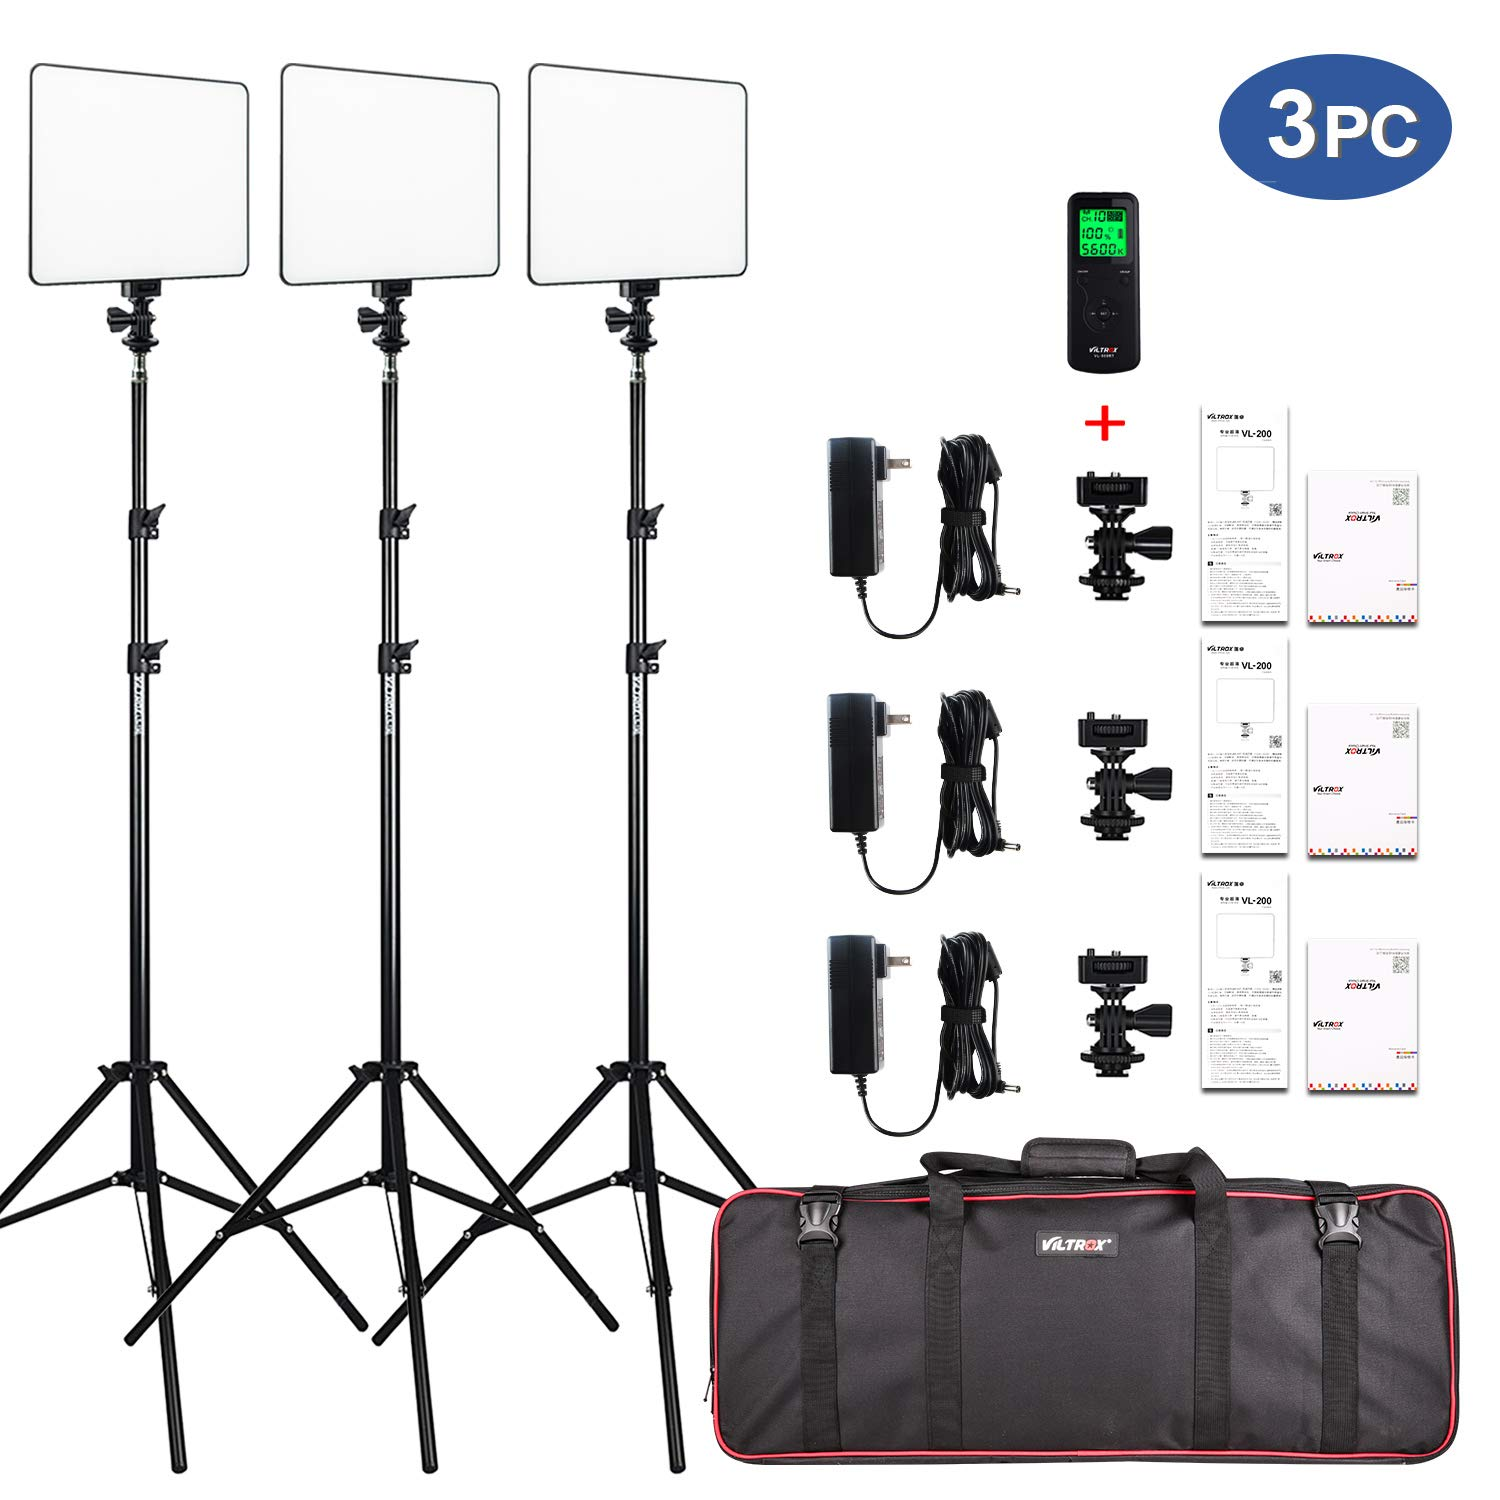 VILTROX VL-200 3 Packs Ultra Thin Dimmable Bi-color LED Video Light Panel Lighting Kit includes: 3300K-5600K CRI 95 LED Light Panel with Hot Shoe Adapter/Light Stand/Remote Controller and AC adapter ...